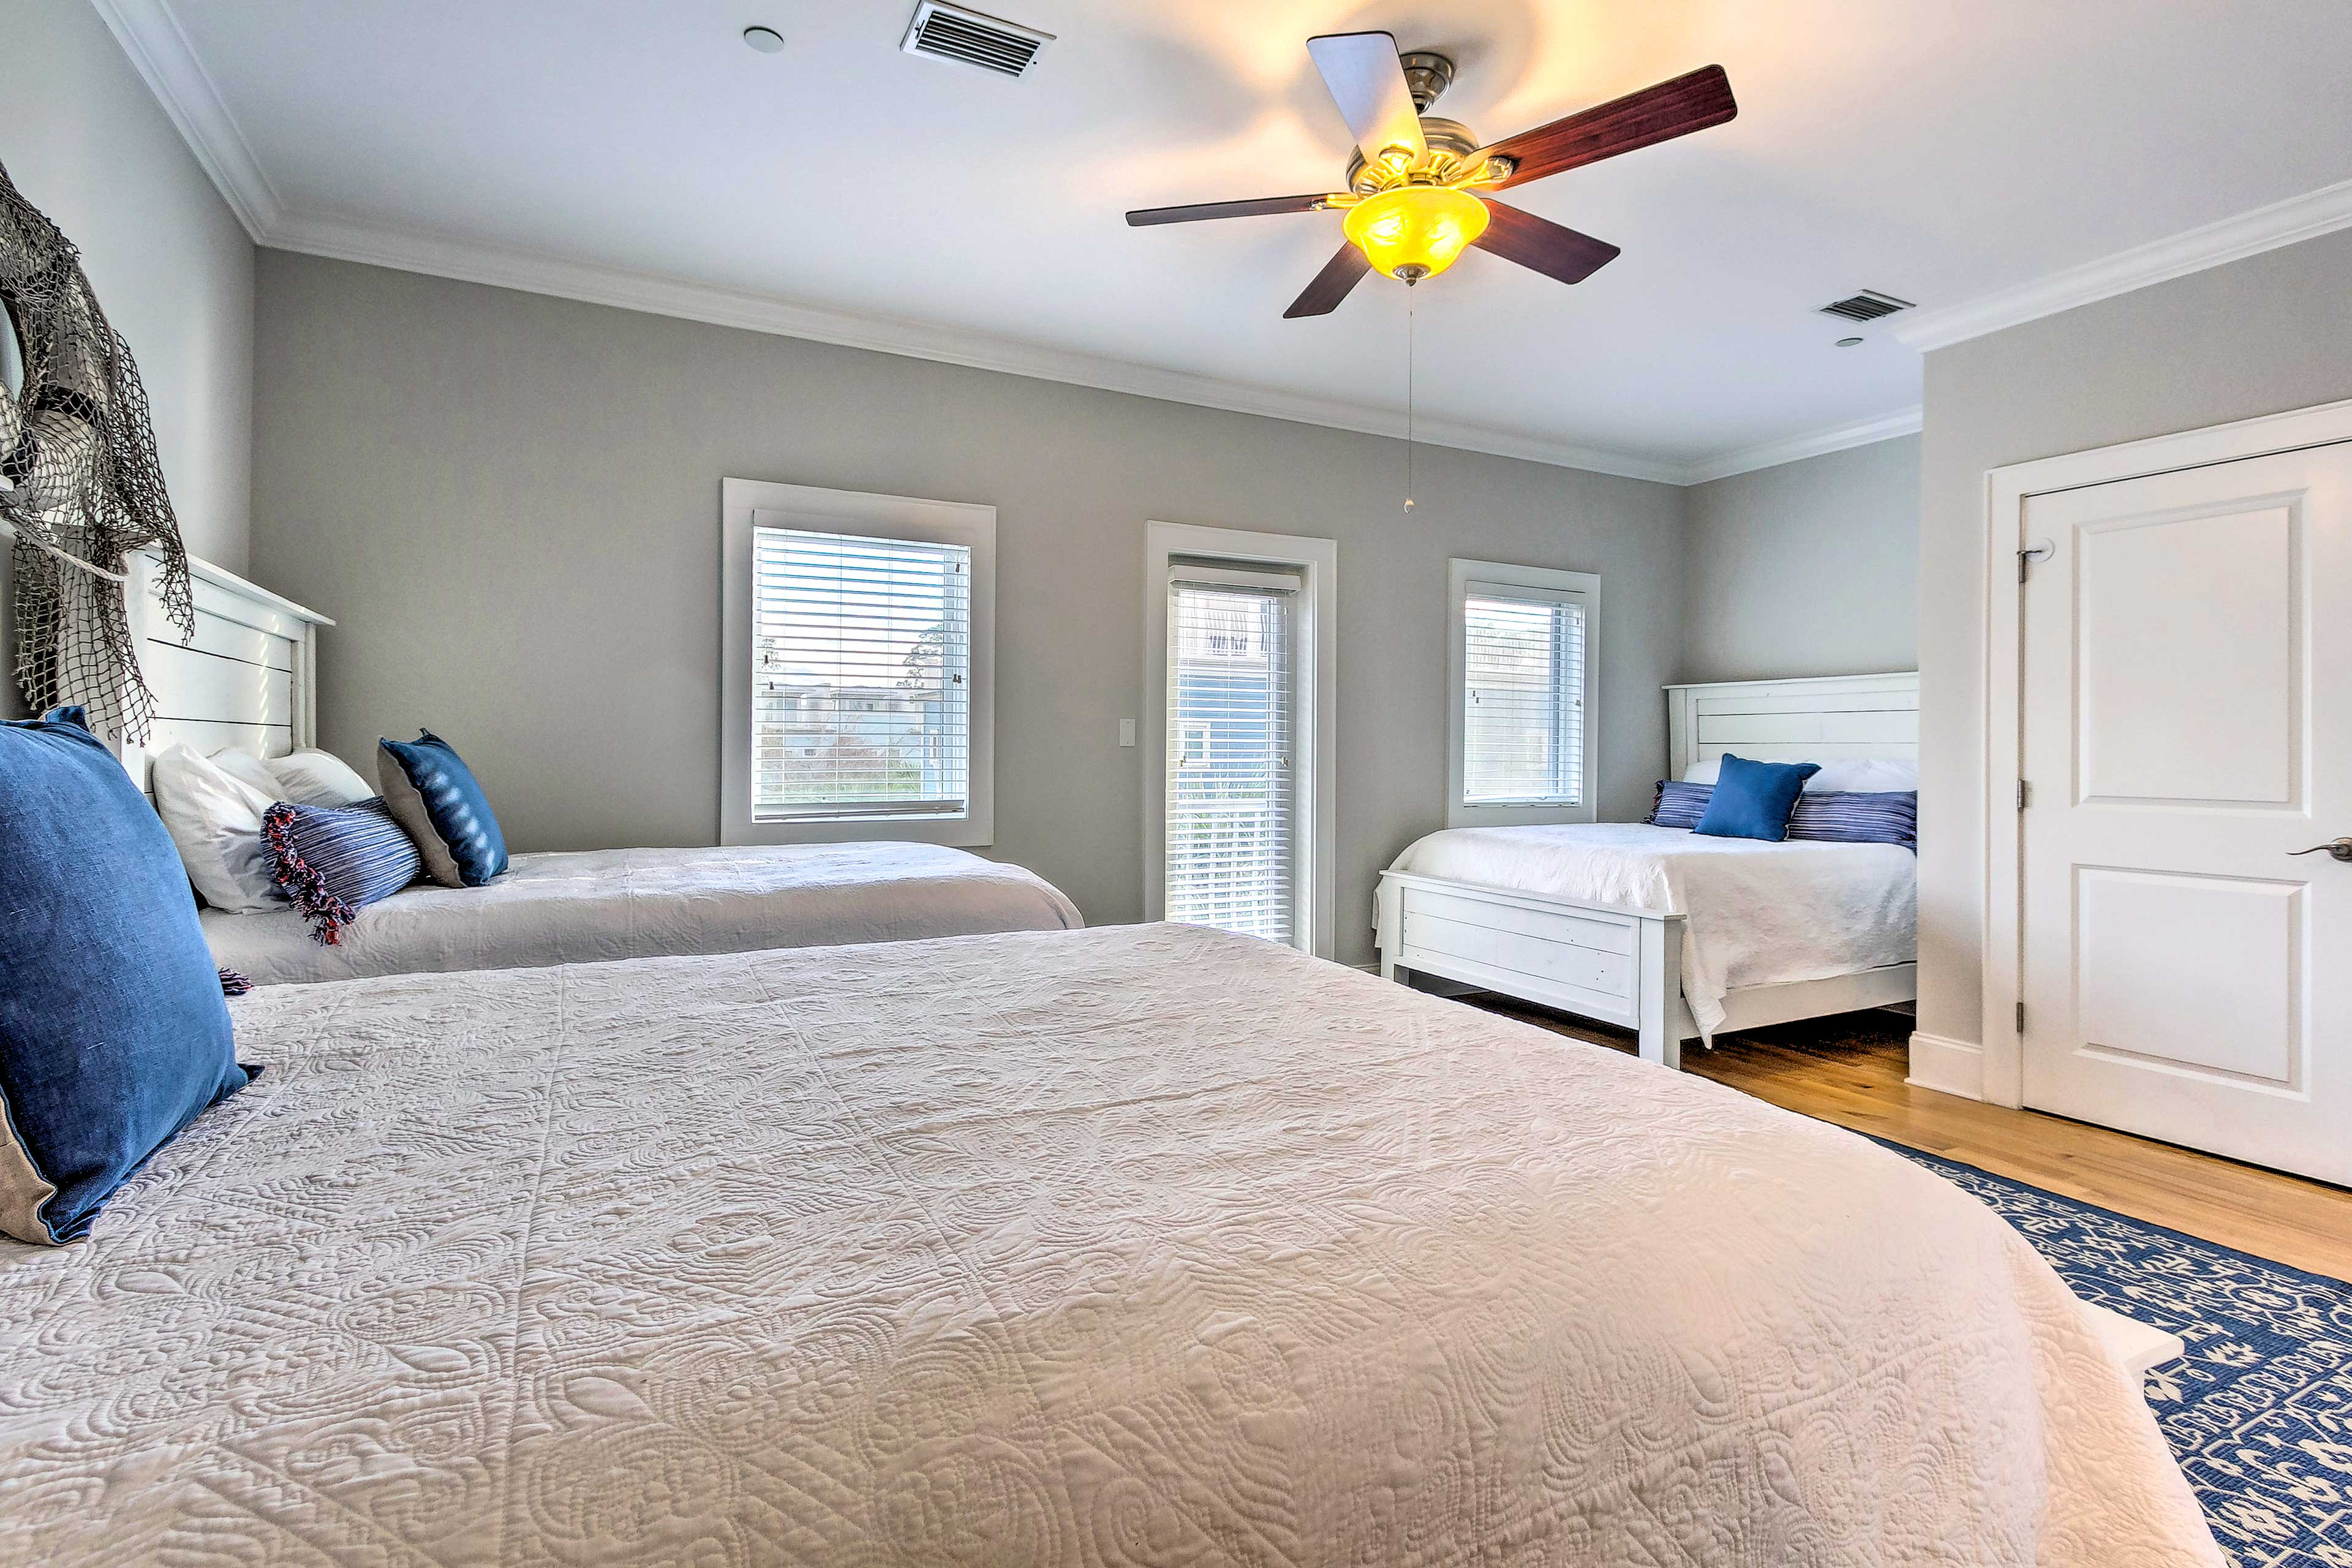 With 3 full beds, this room is great for kids or several couples.